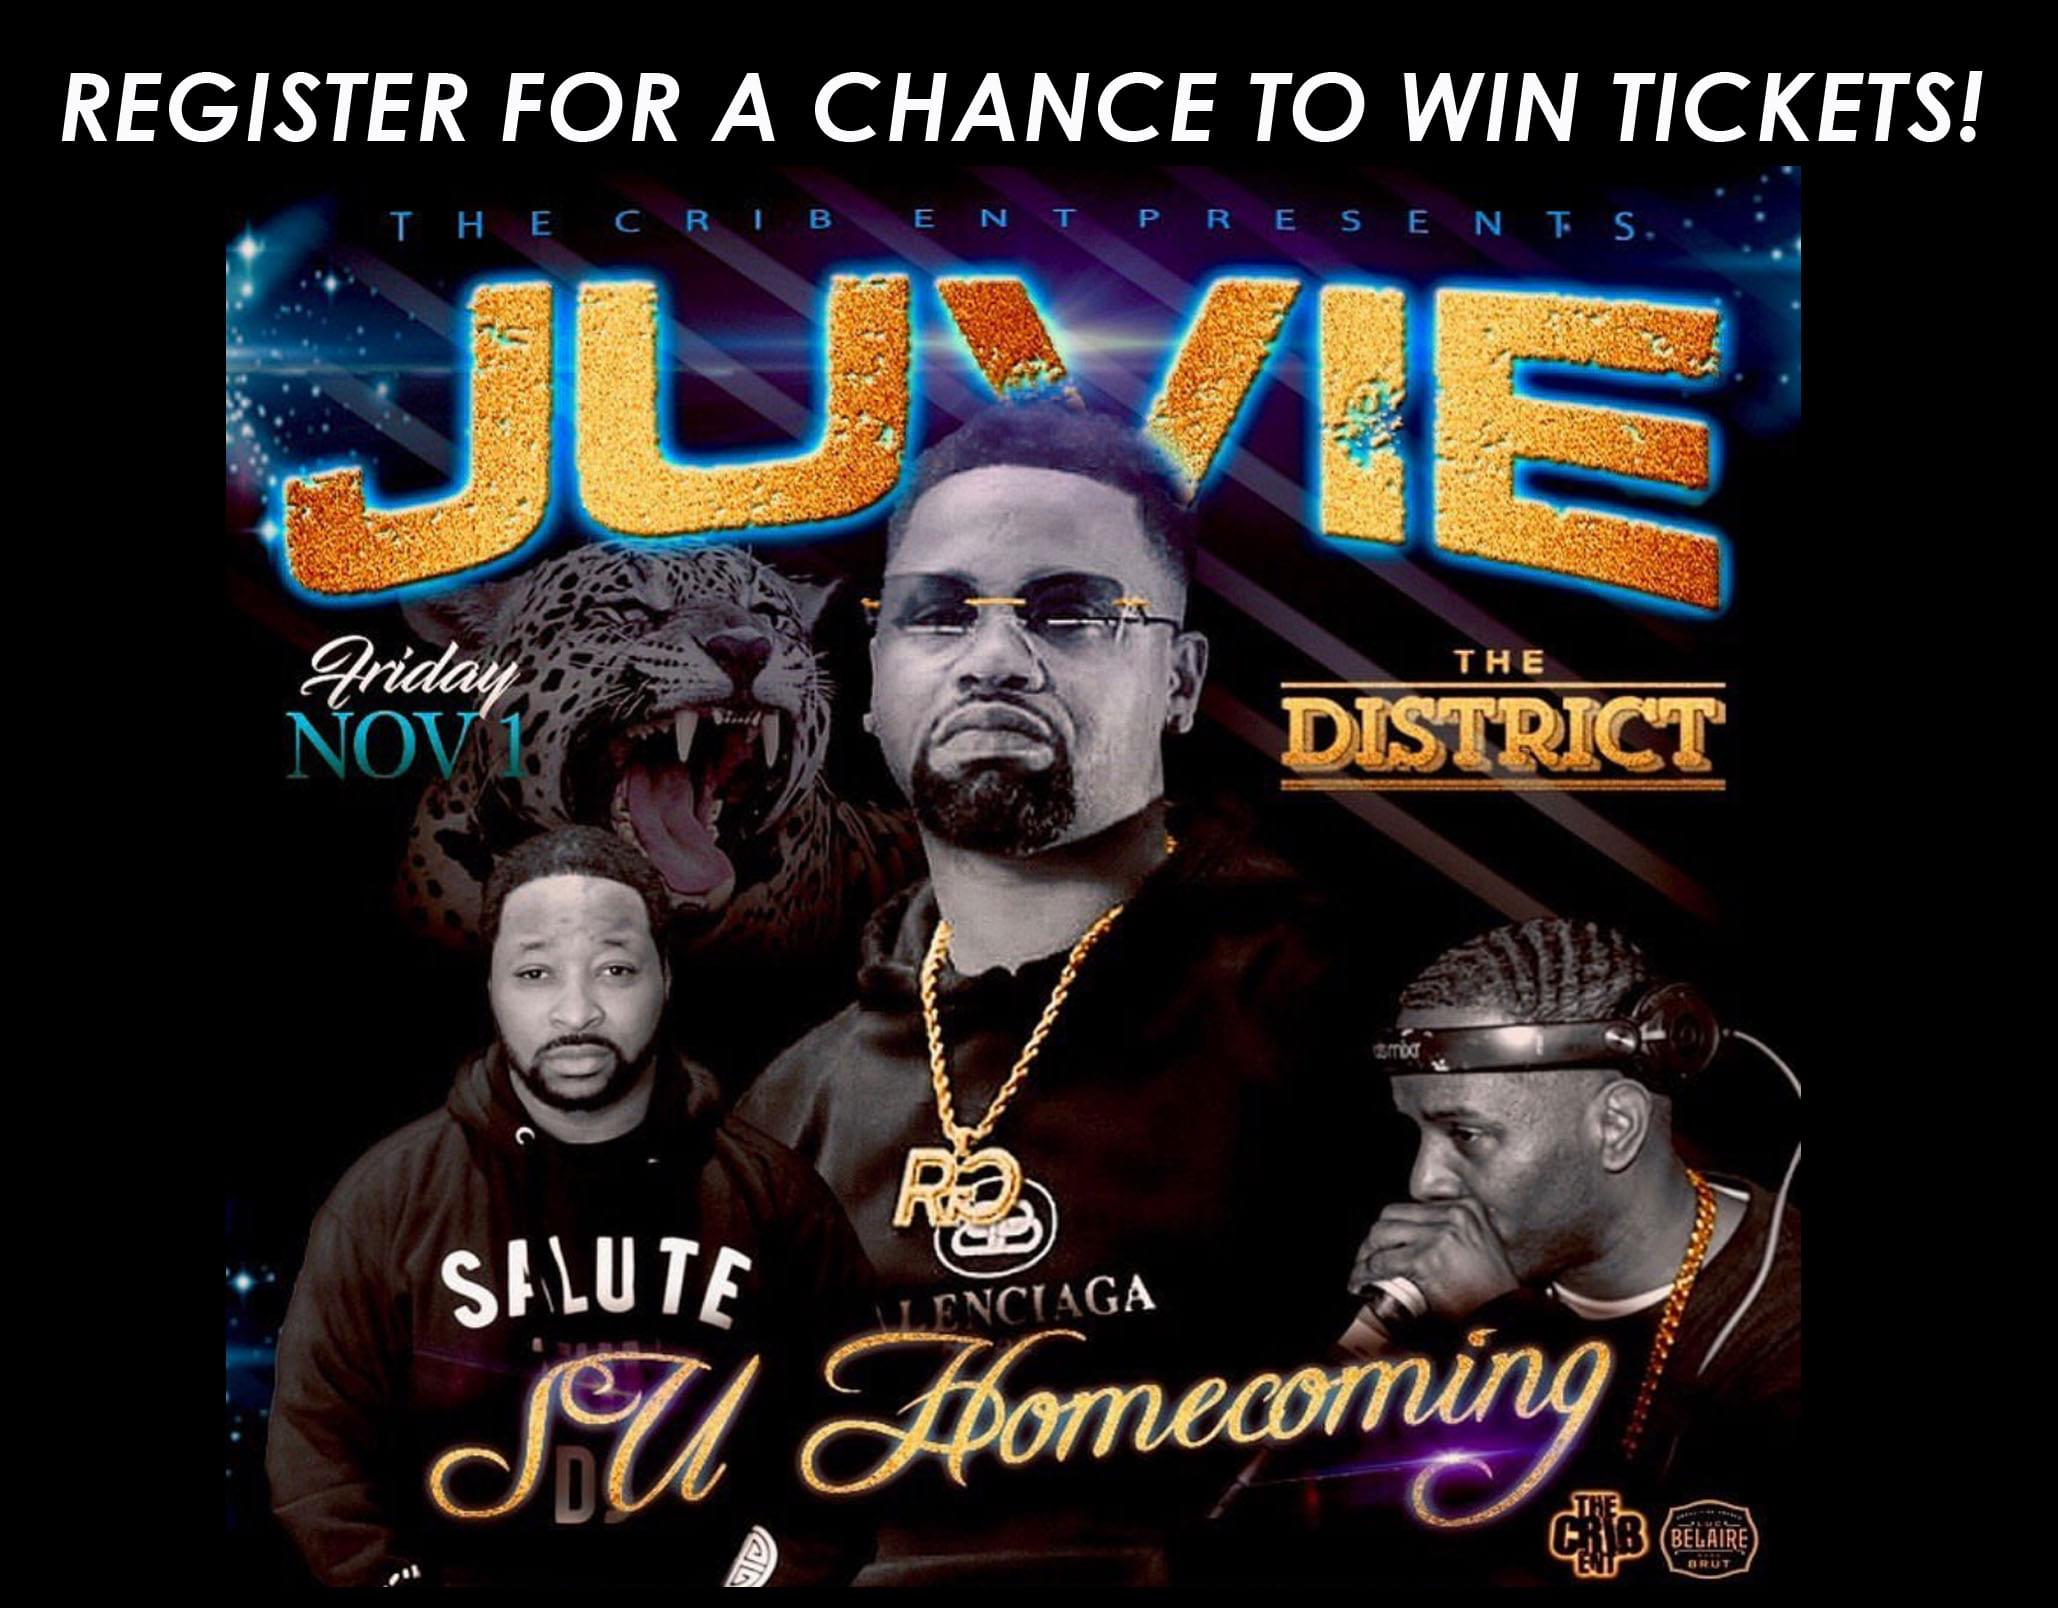 Register to Win Juvenile Tickets